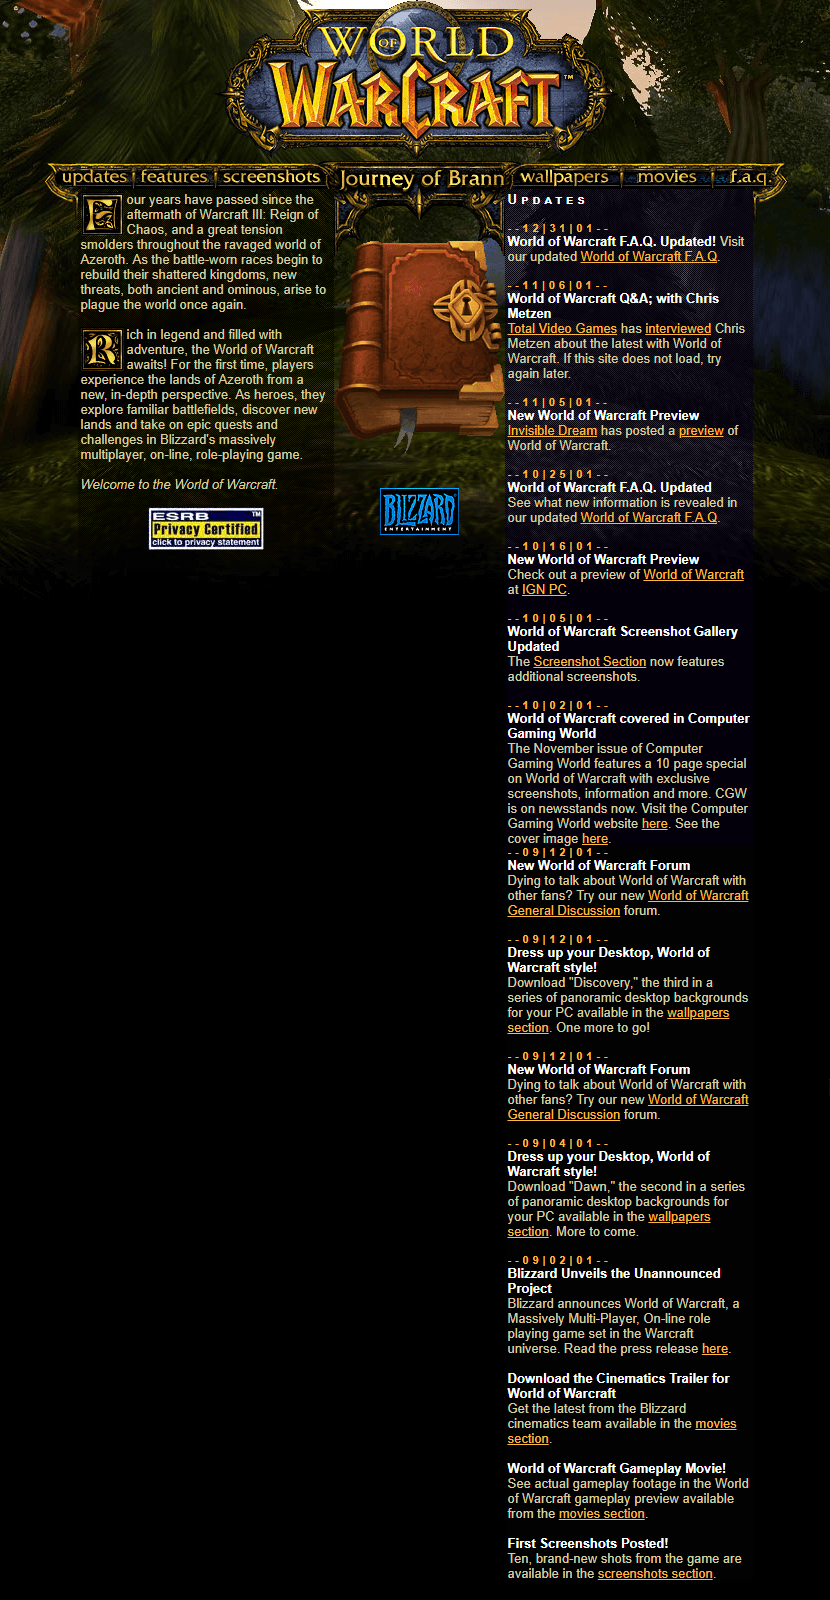 World of Warcraft in 2002